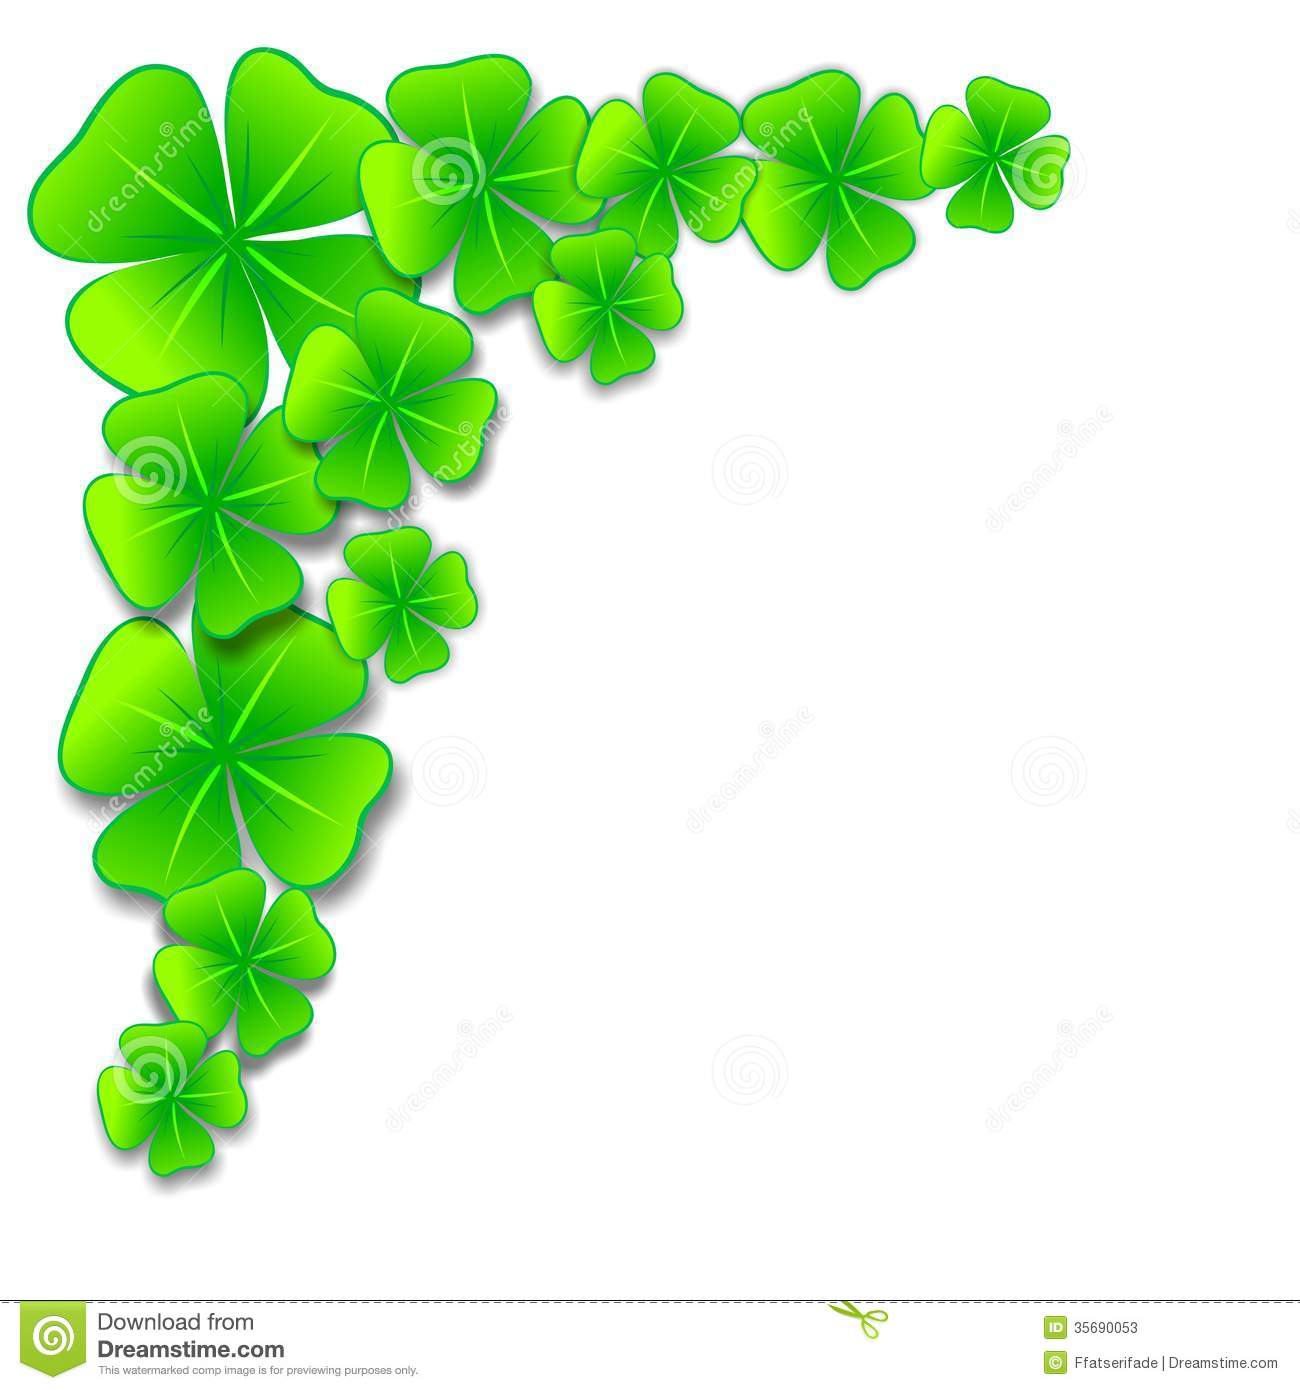 Displaying 19> Images For - 4 Leaf Clover Clipart...